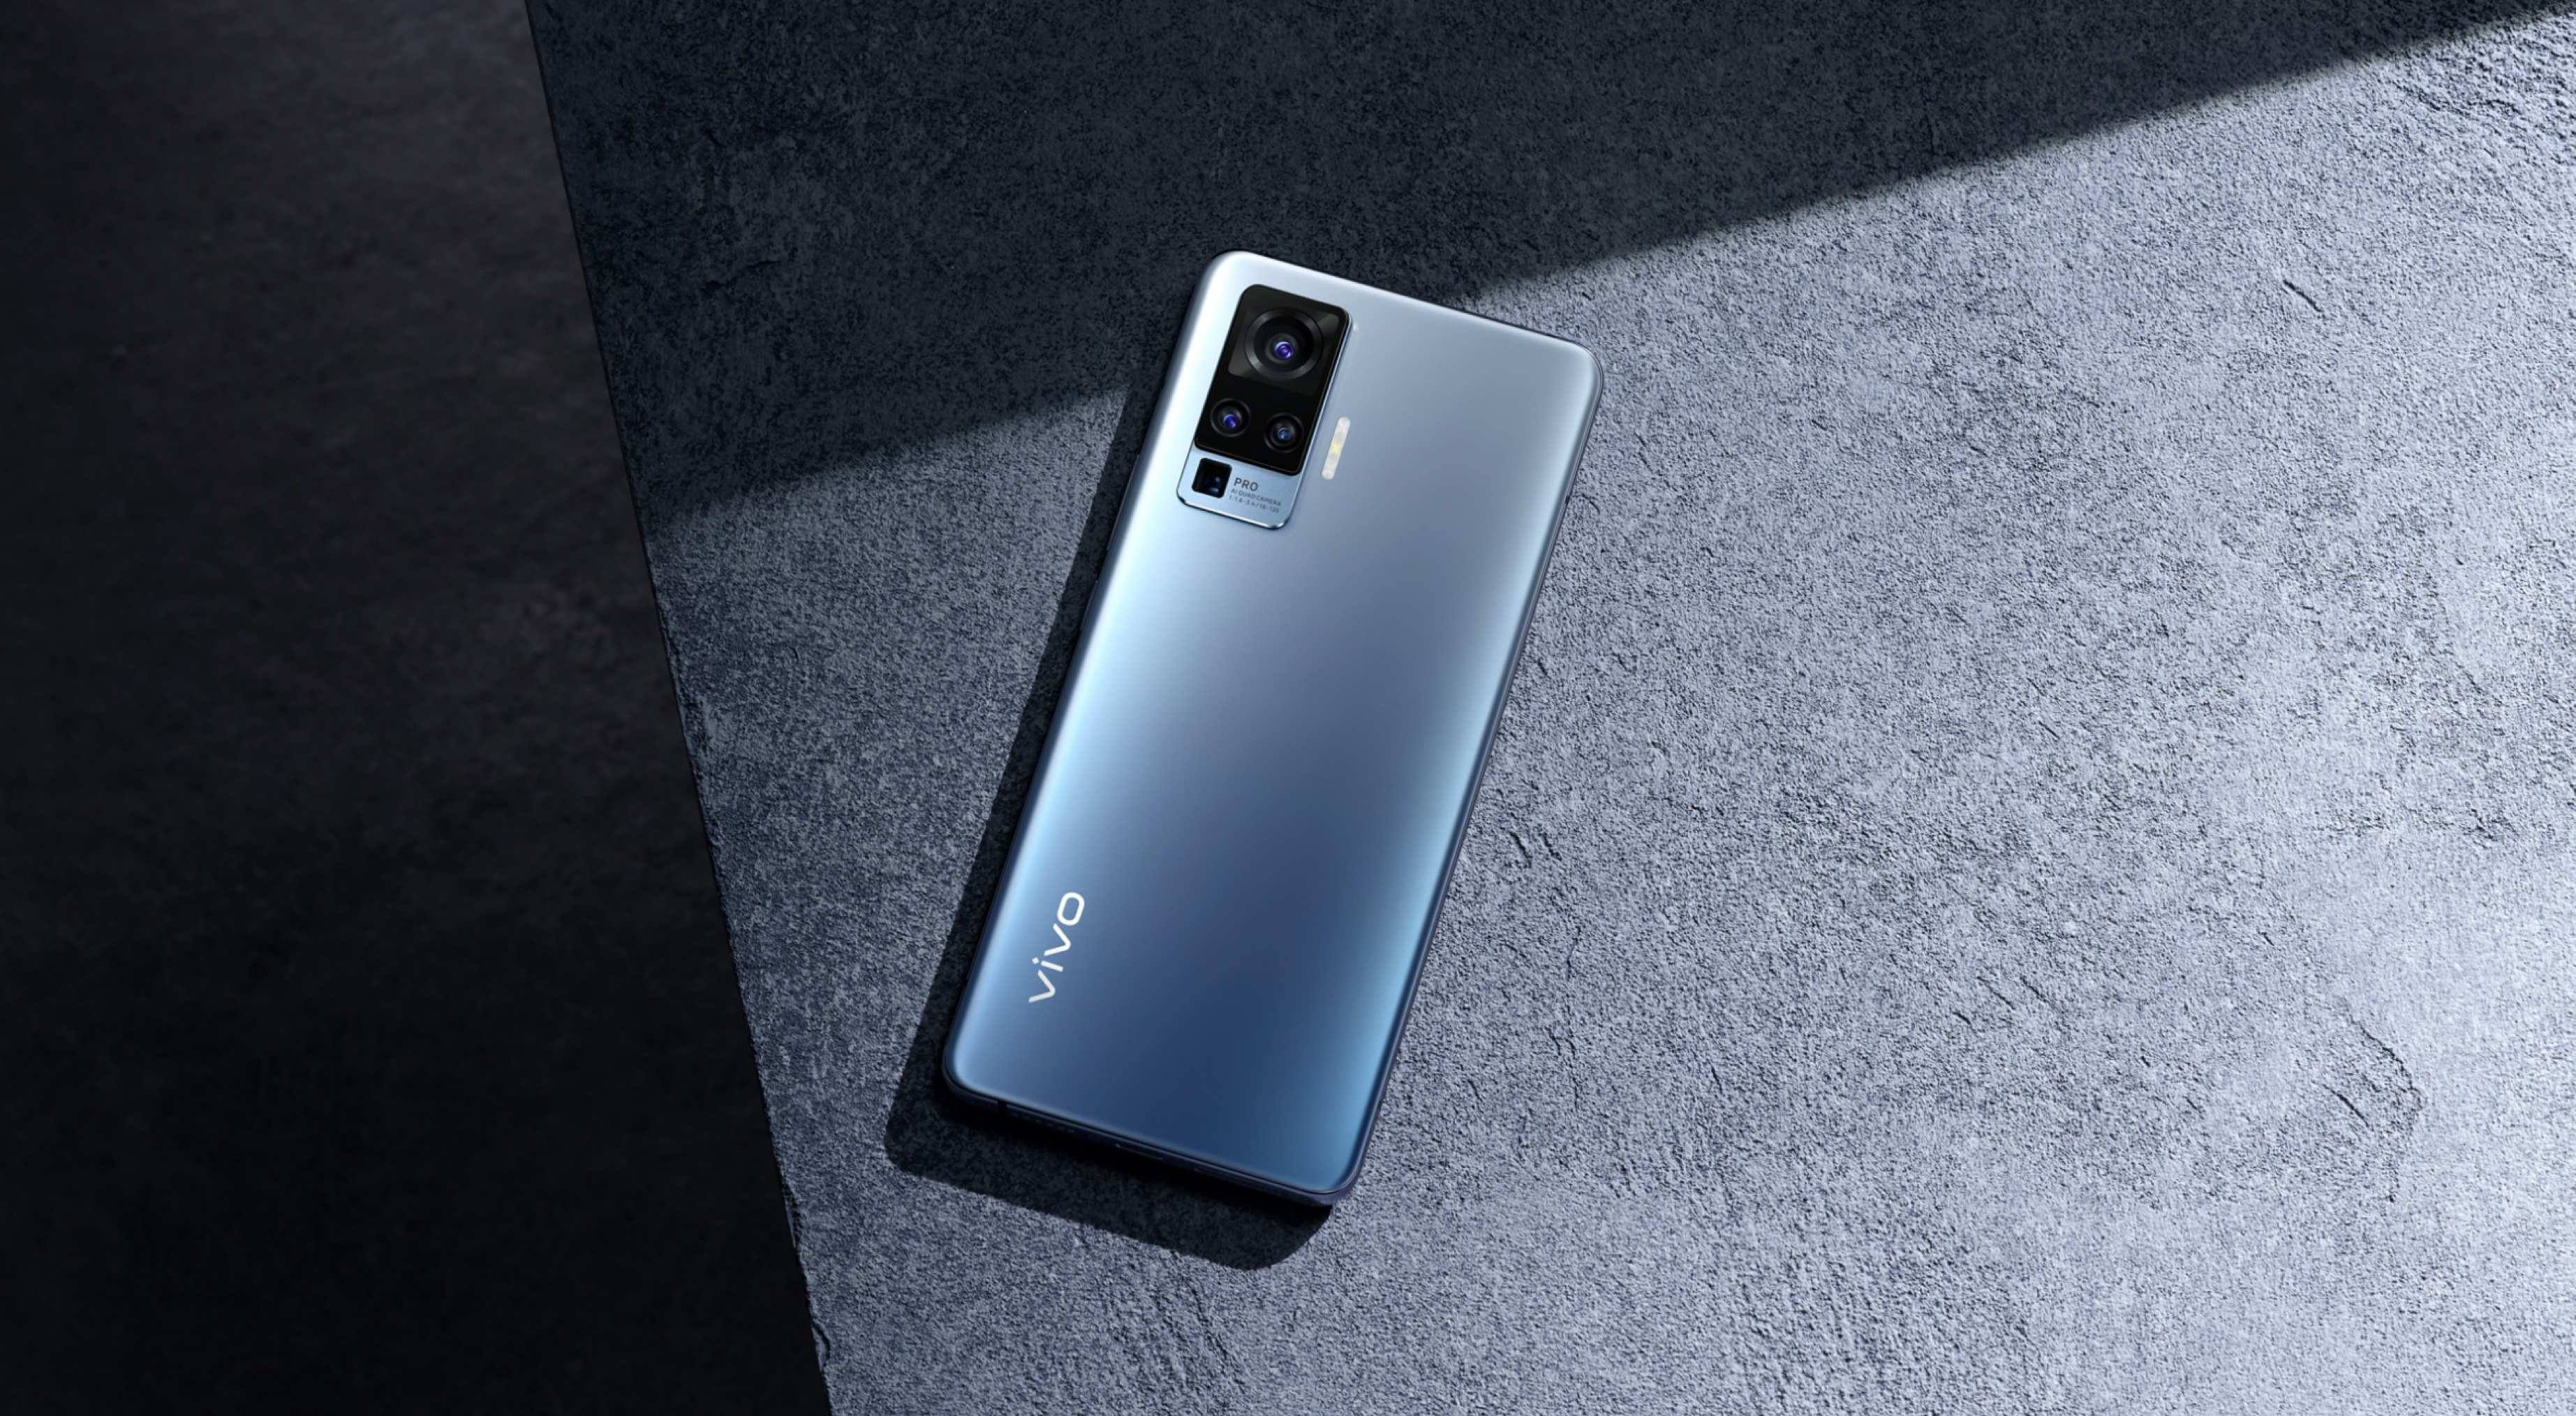 vivo to launch X50 Pro, all new 5G smartphone into Australia Bringing exceptional gimbal camera technology to Aussies